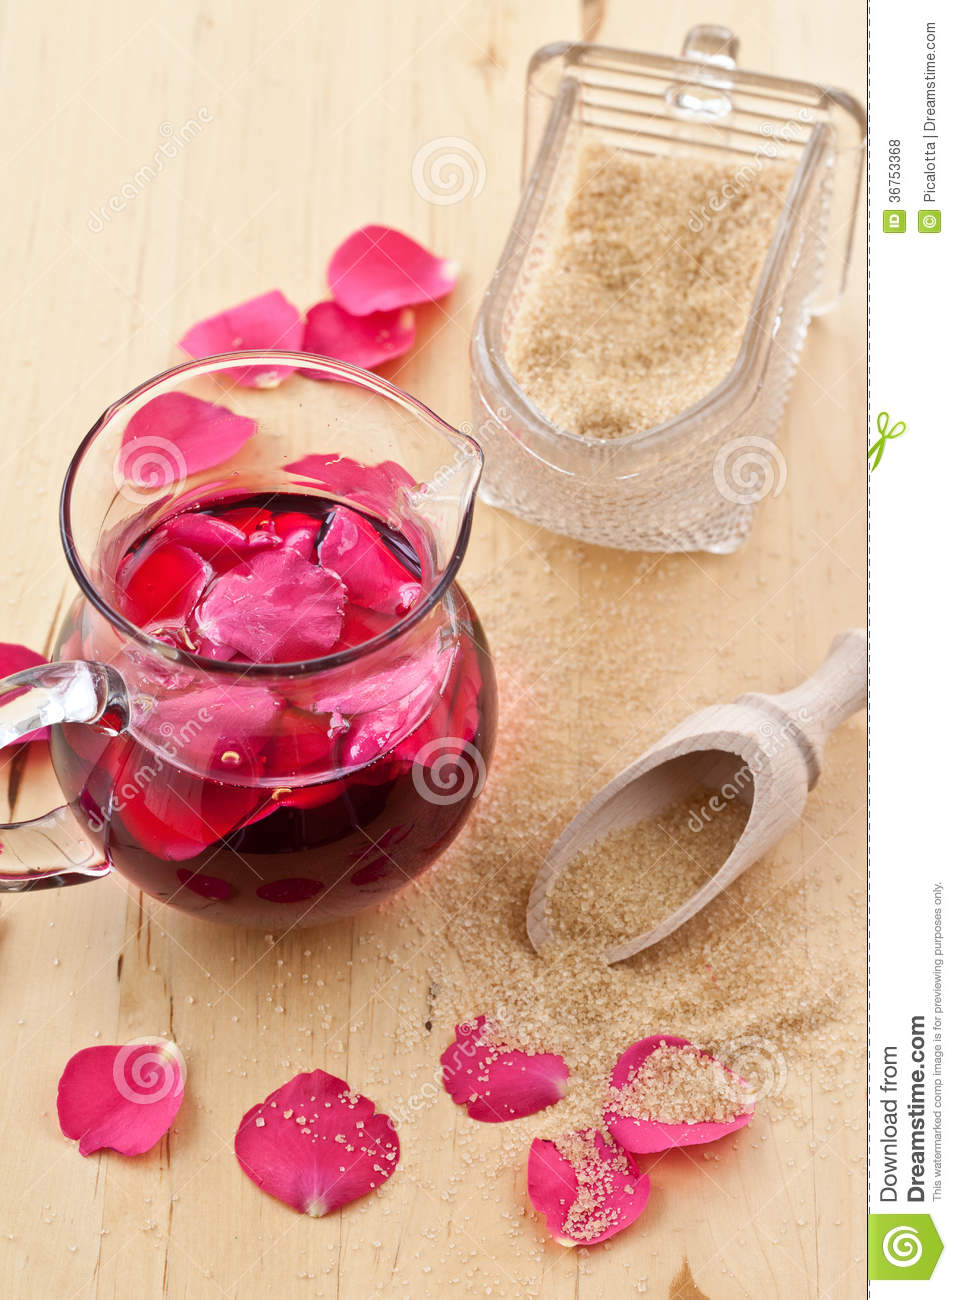 Syrup with rose petals